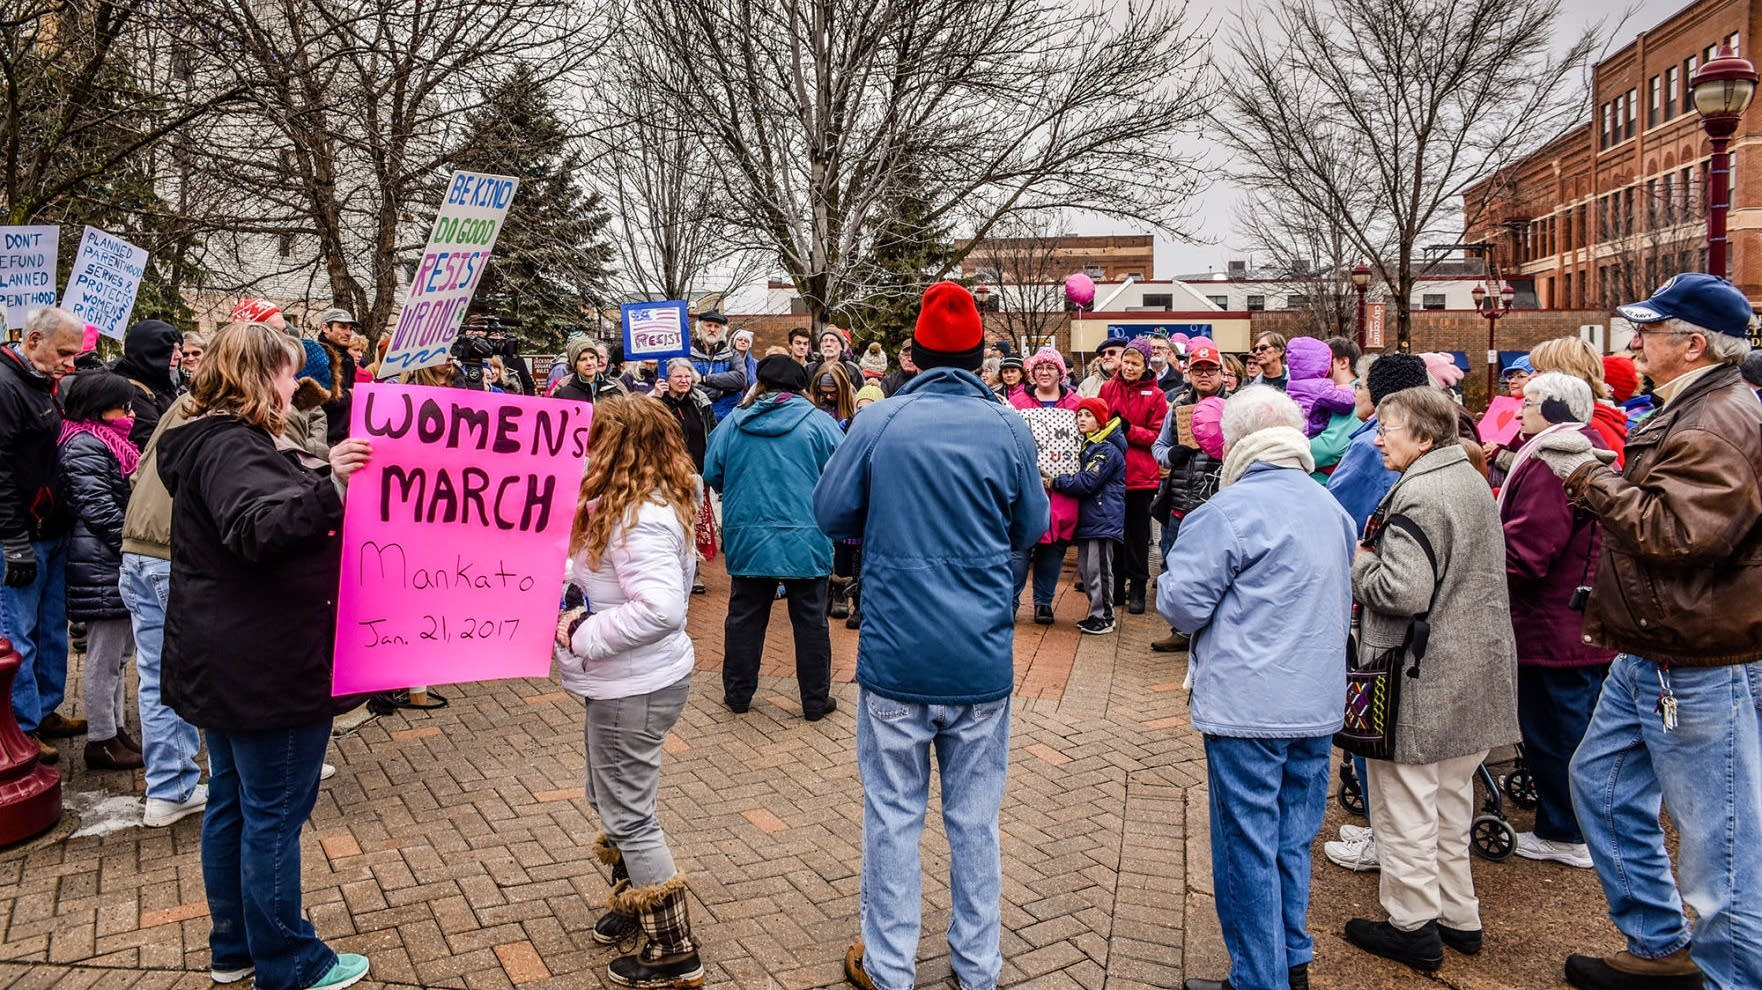 About 50 people gathered Saturday at Jackson Park in Mankato.